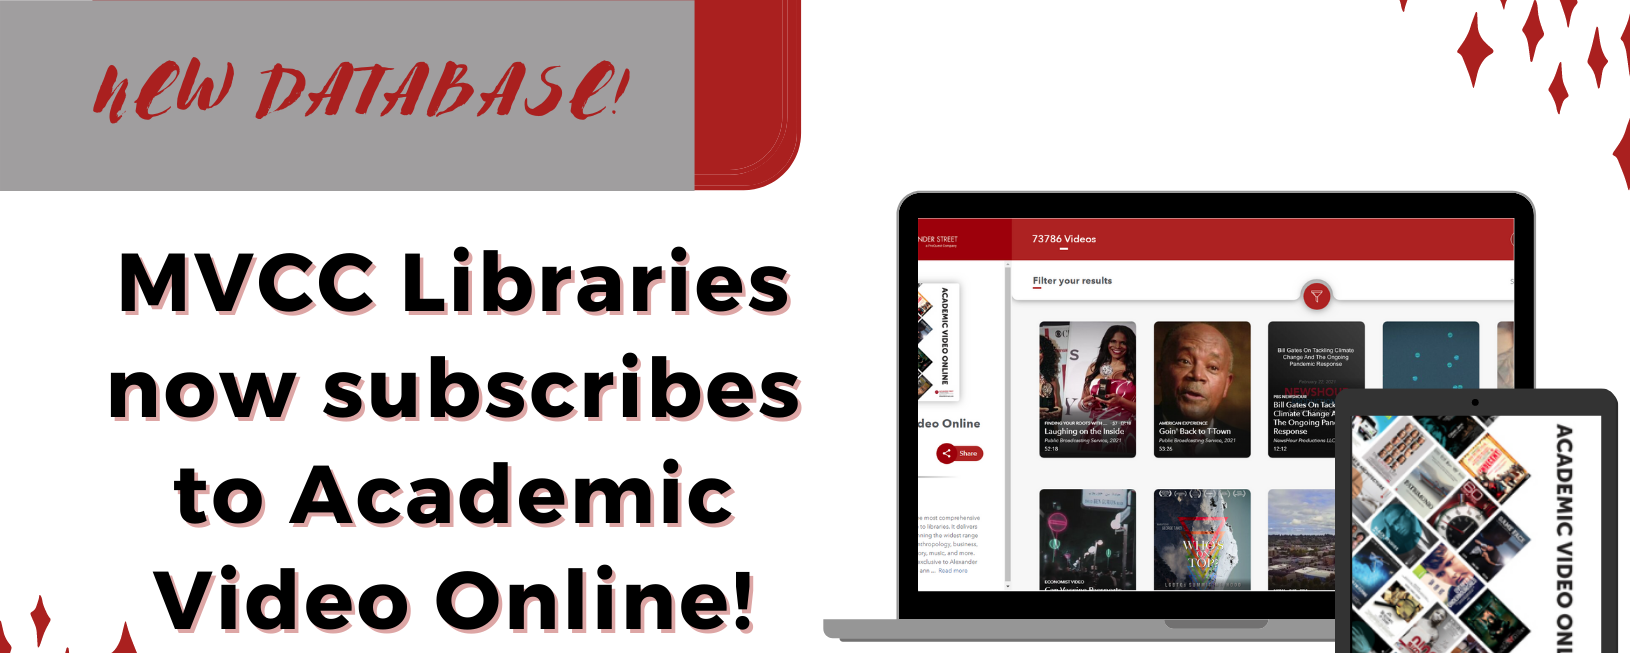 MVCC Libraries now subscribes to Academic Video Online!